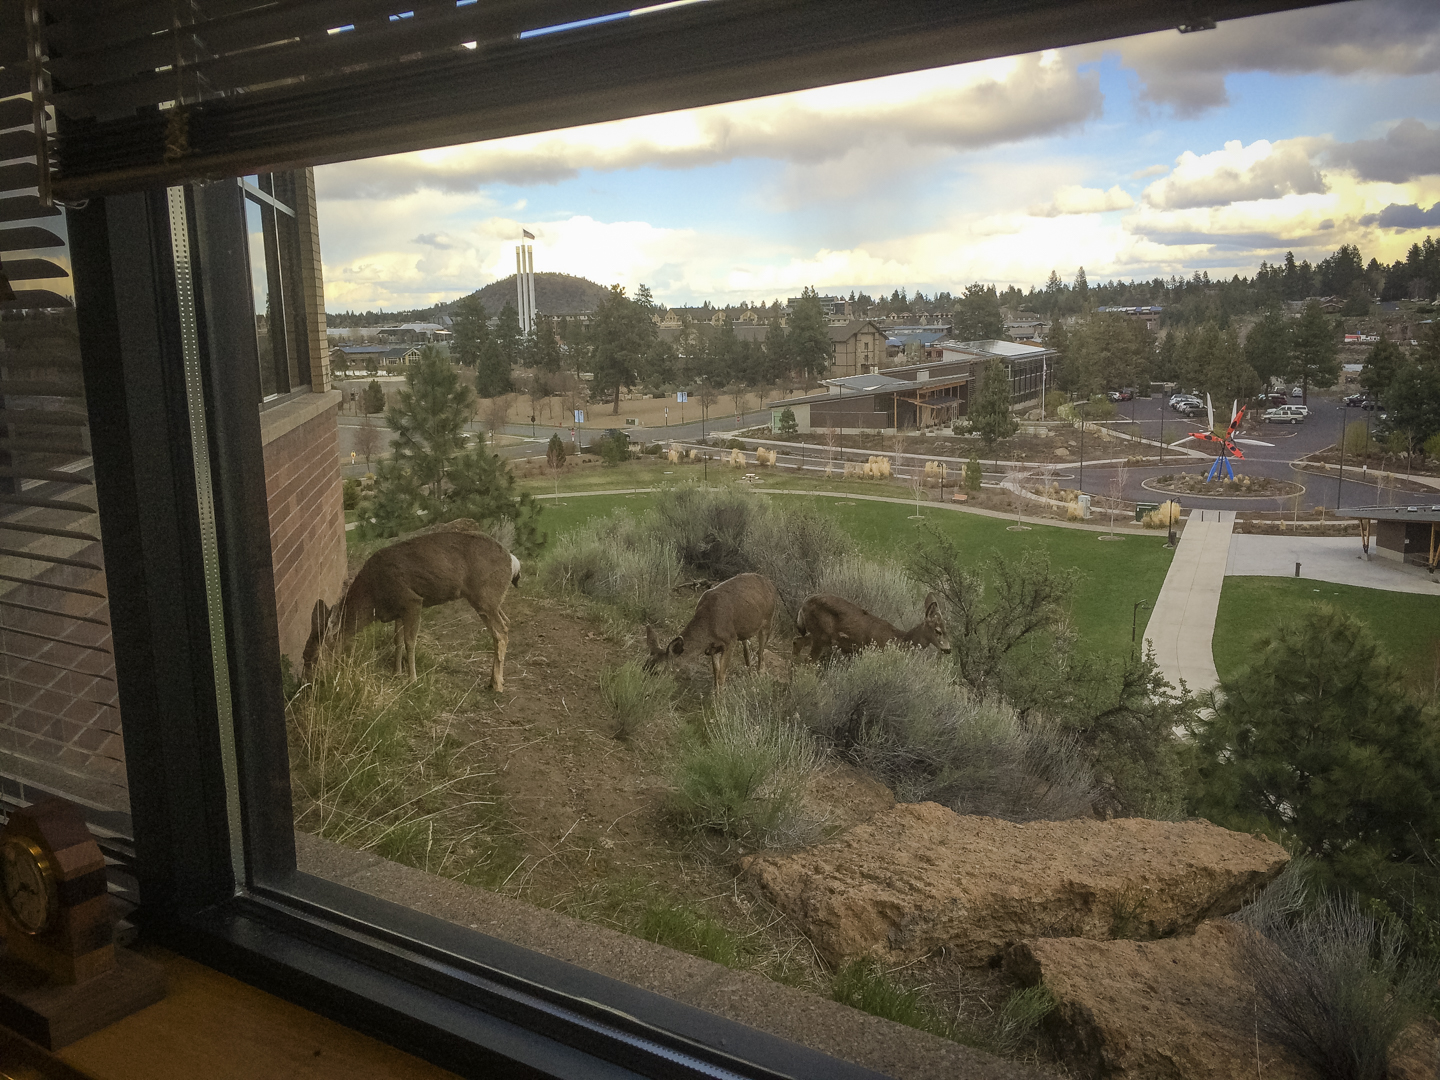 Urban deer in Bend, Oregon